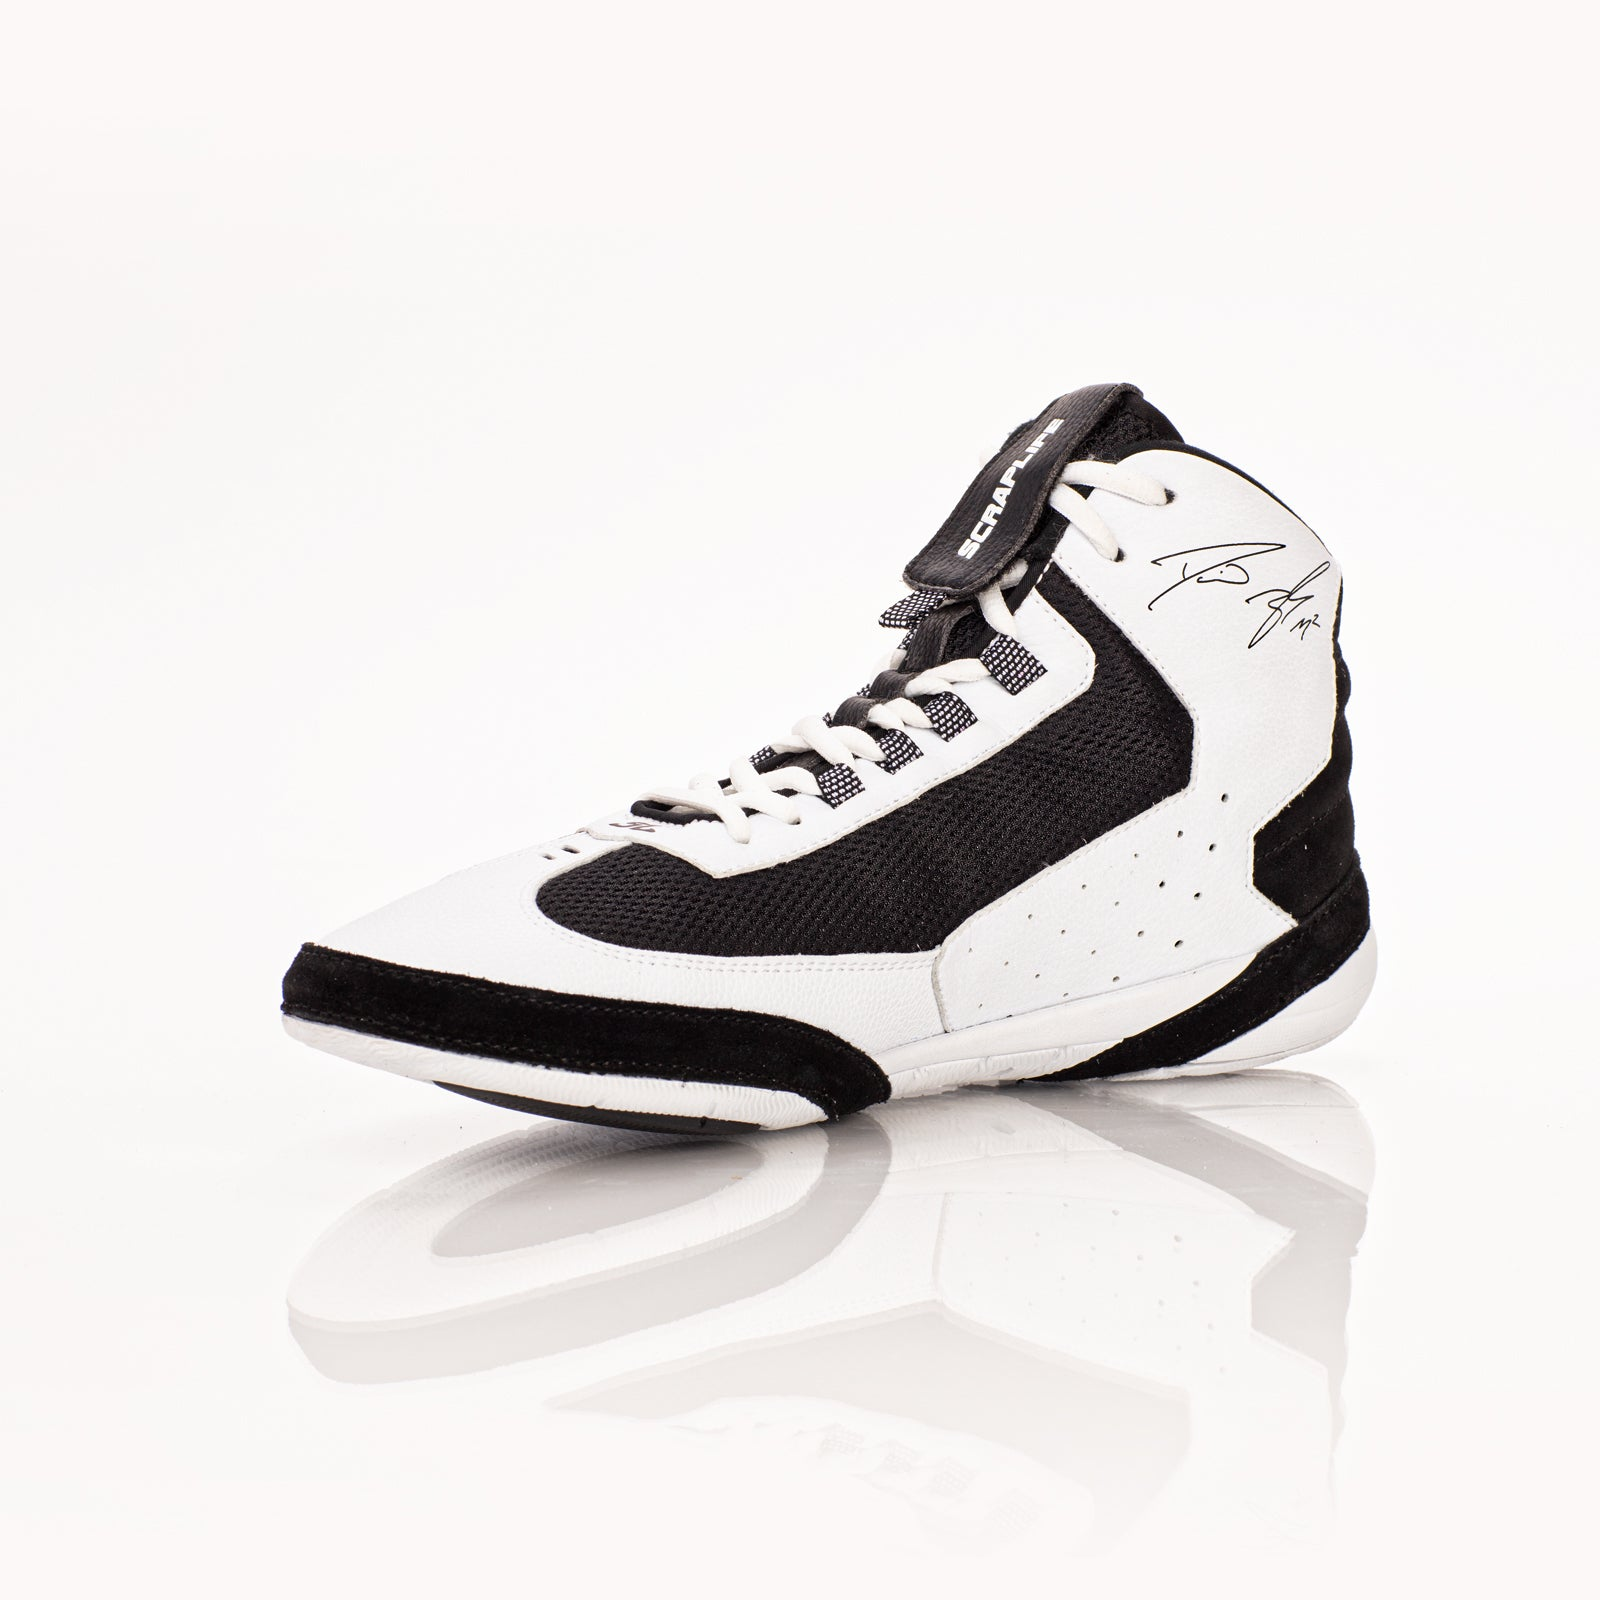 Ascend One - David Taylor Signature Model - White/Black